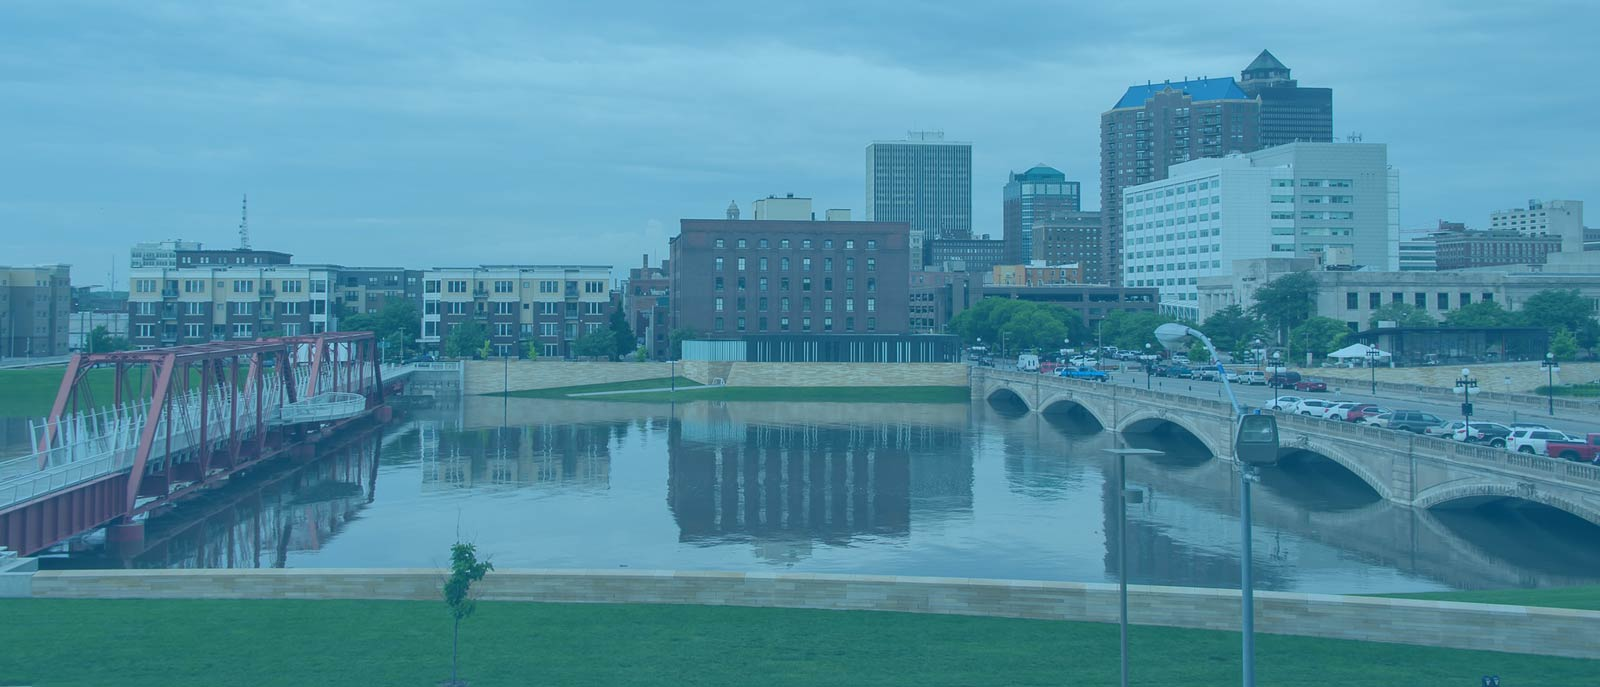 """Des Moines; """"Des Moines Iowa"""" flickr photo by cwwycoff1 https://flickr.com/photos/carlwwycoff/19190072505 shared under a Creative Commons (BY) license"""